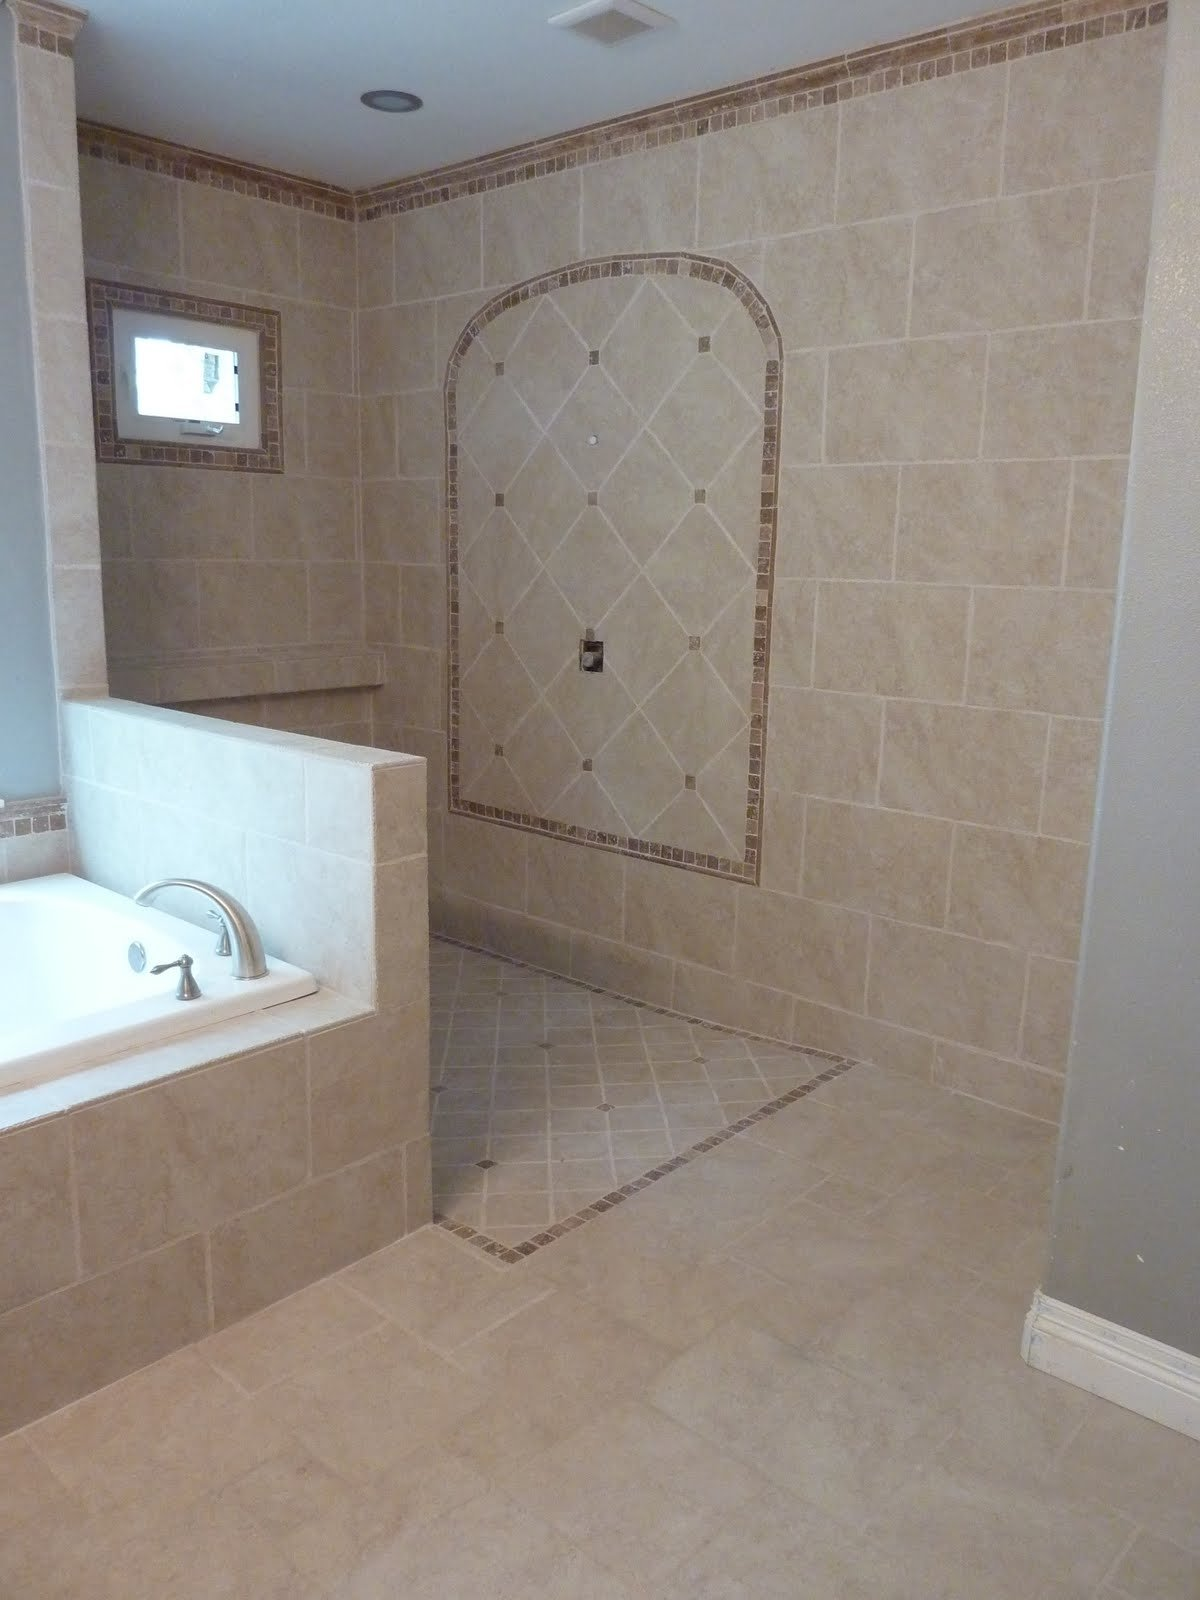 10 Spectacular Doorless Walk In Shower Ideas add glass on wall between tub and shower lip on shower entry from